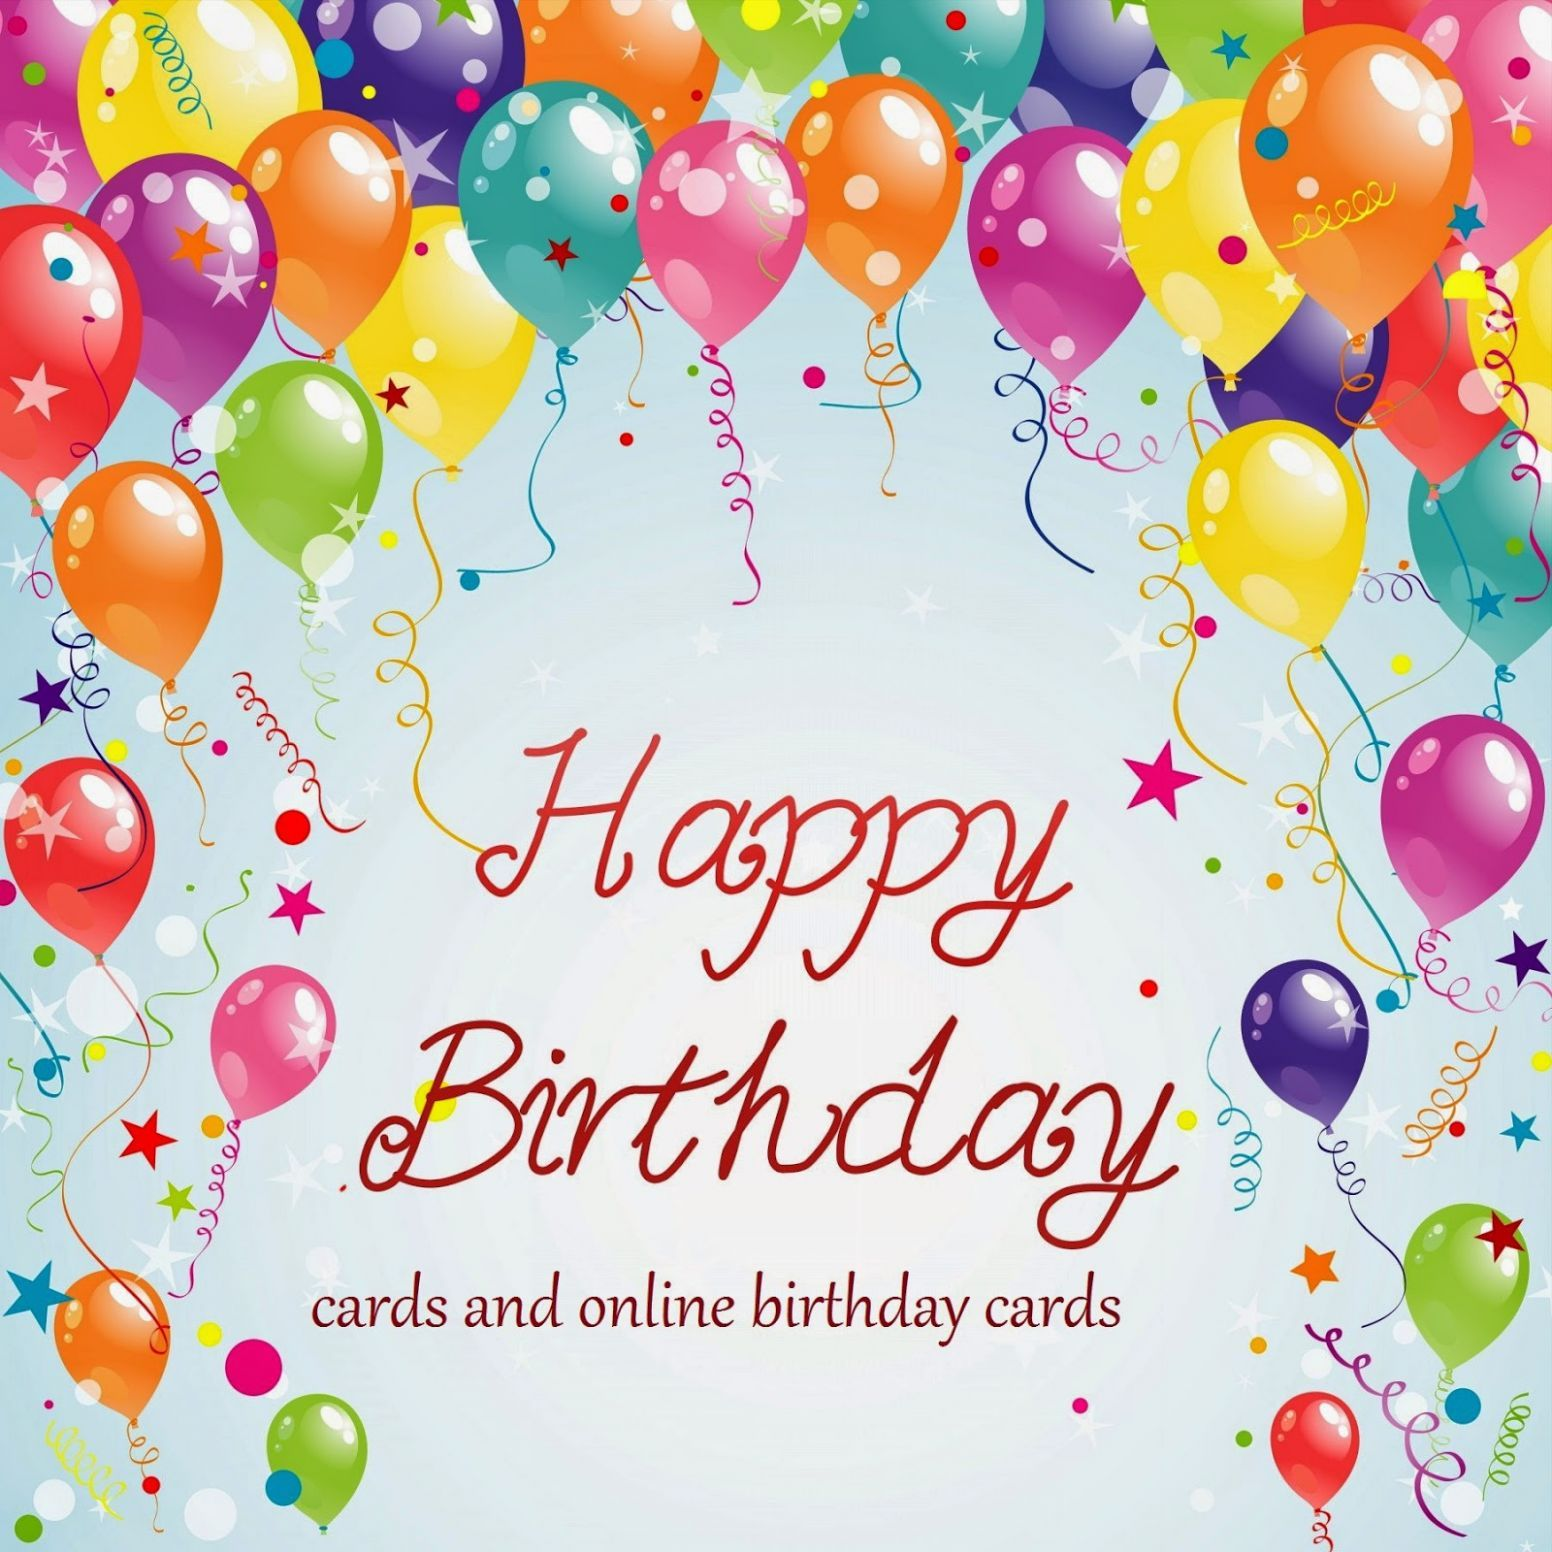 9 Send Happy Birthday Card Free Email Birthday Cards Virtual Birthday Cards Happy Birthday Wishes Images